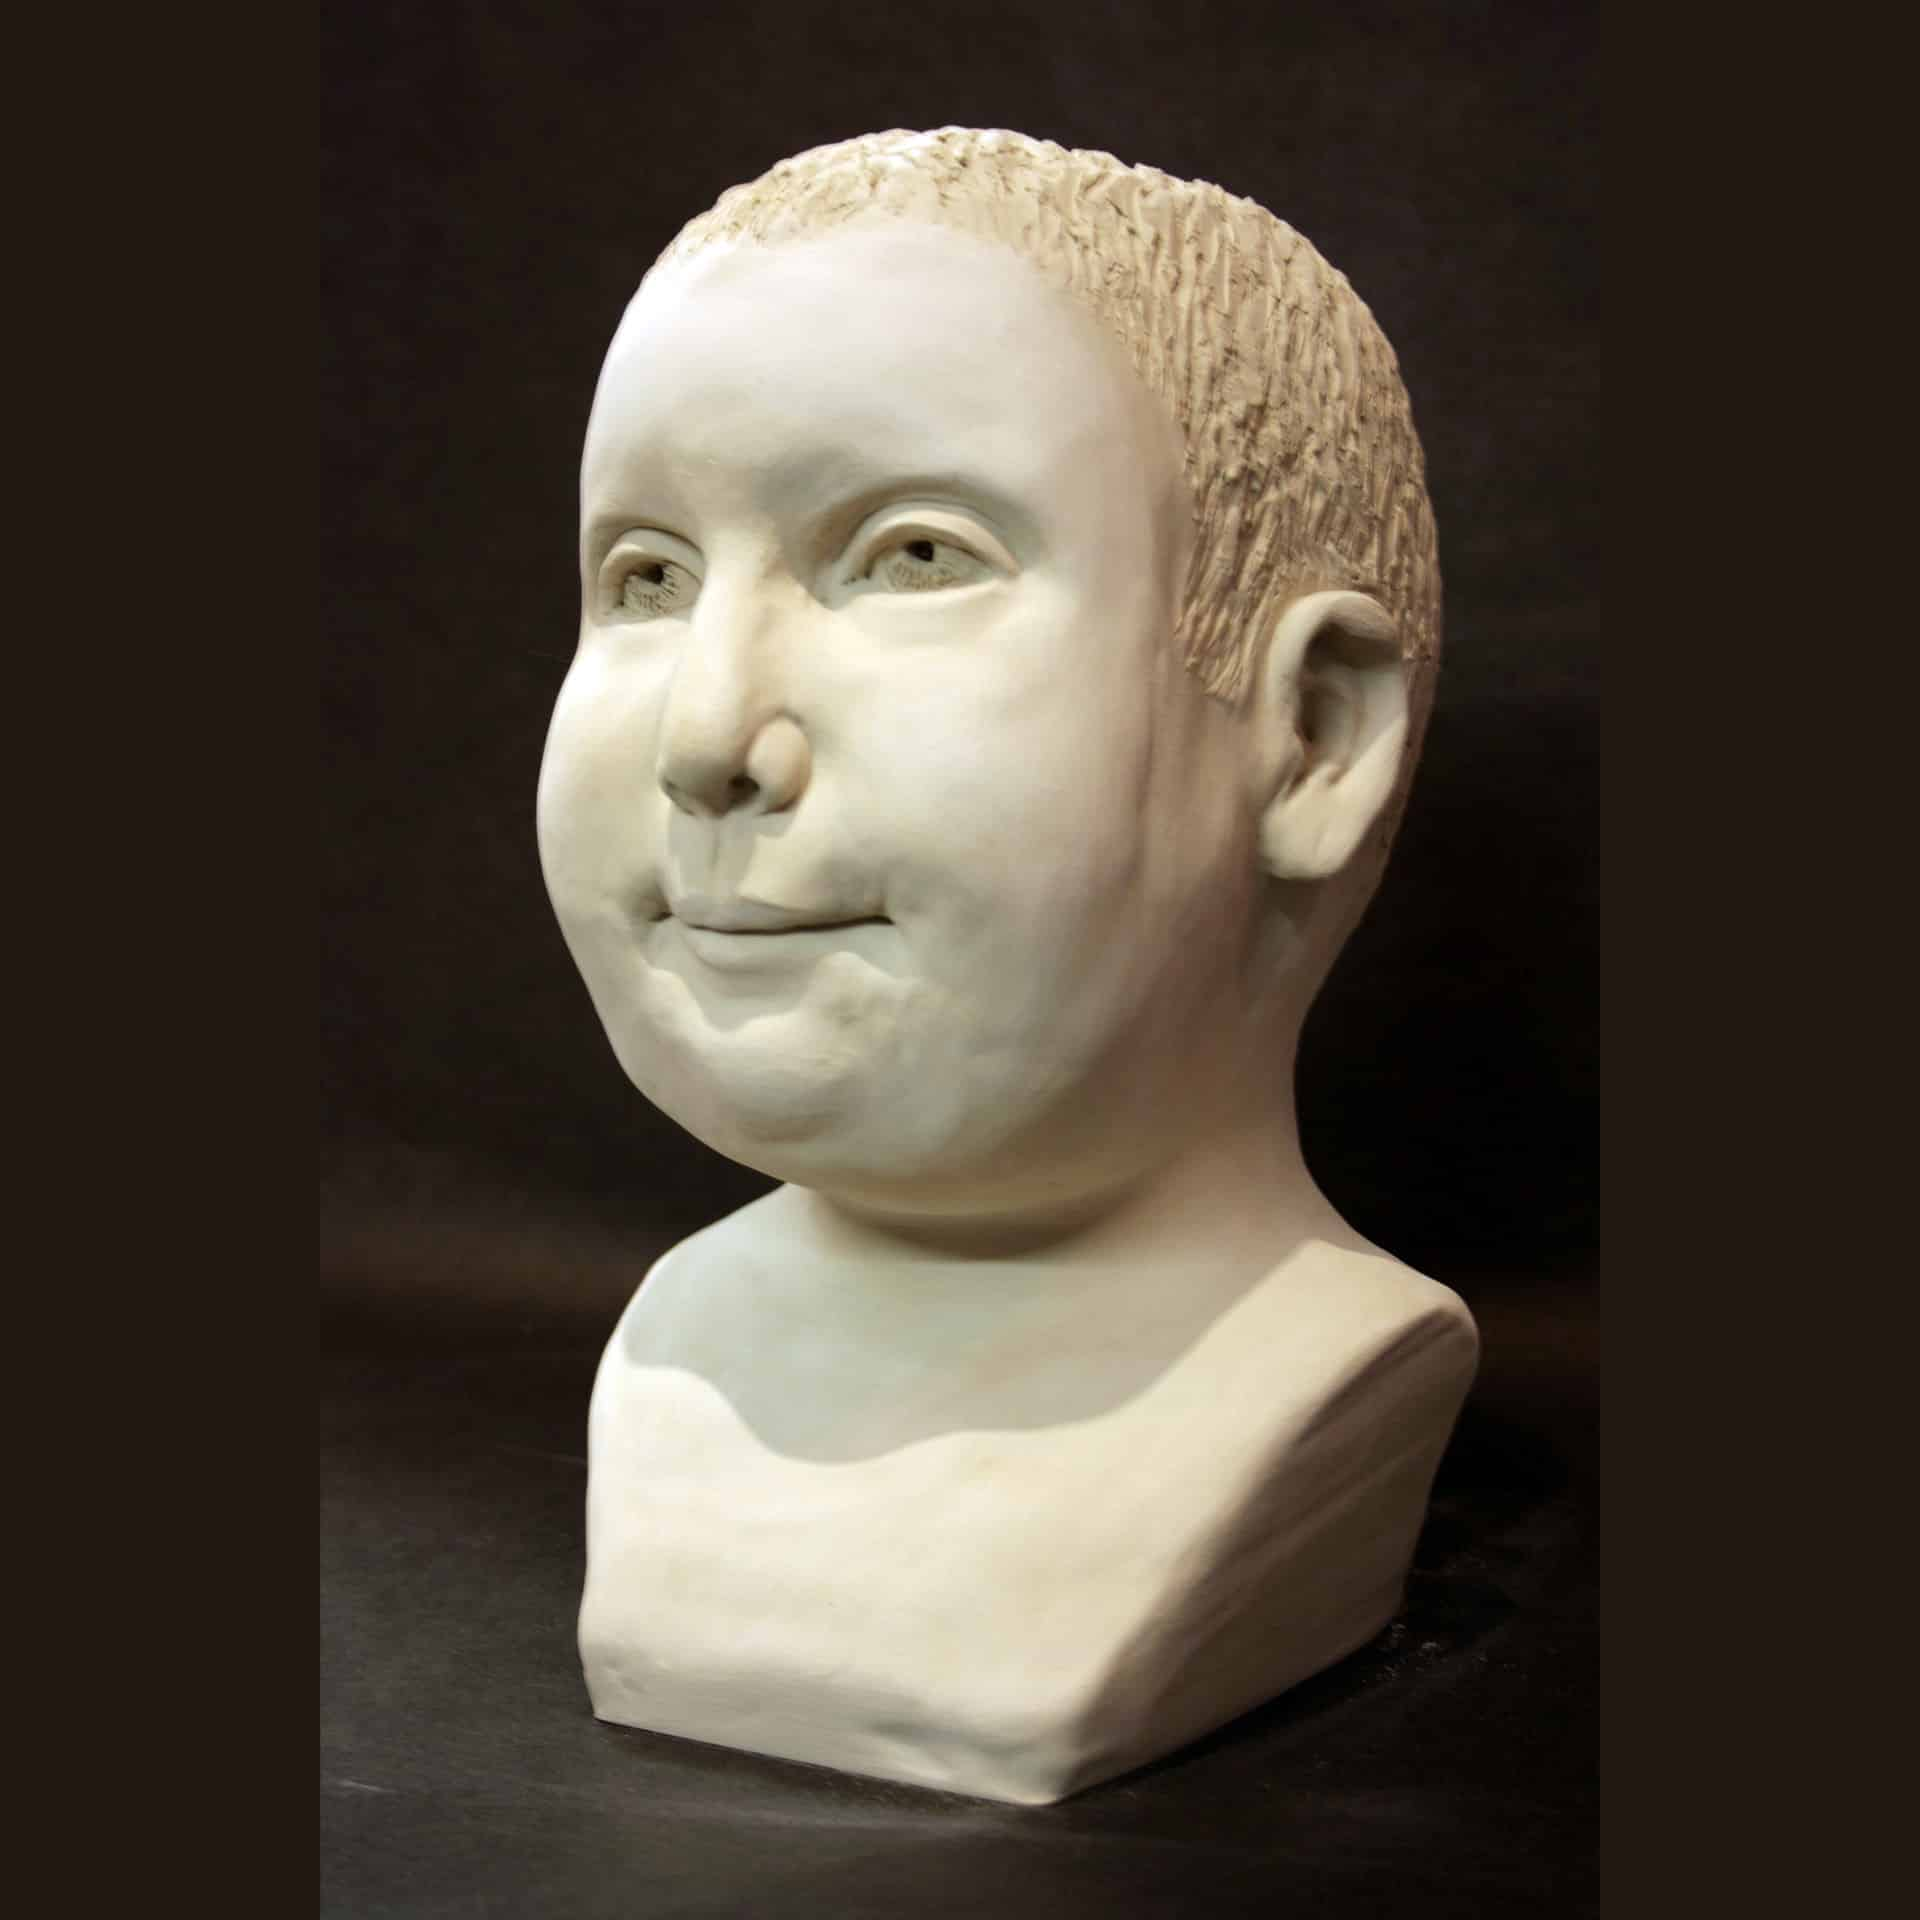 Portrait Sculpture of Given by Ohio Artist Terri Meyer